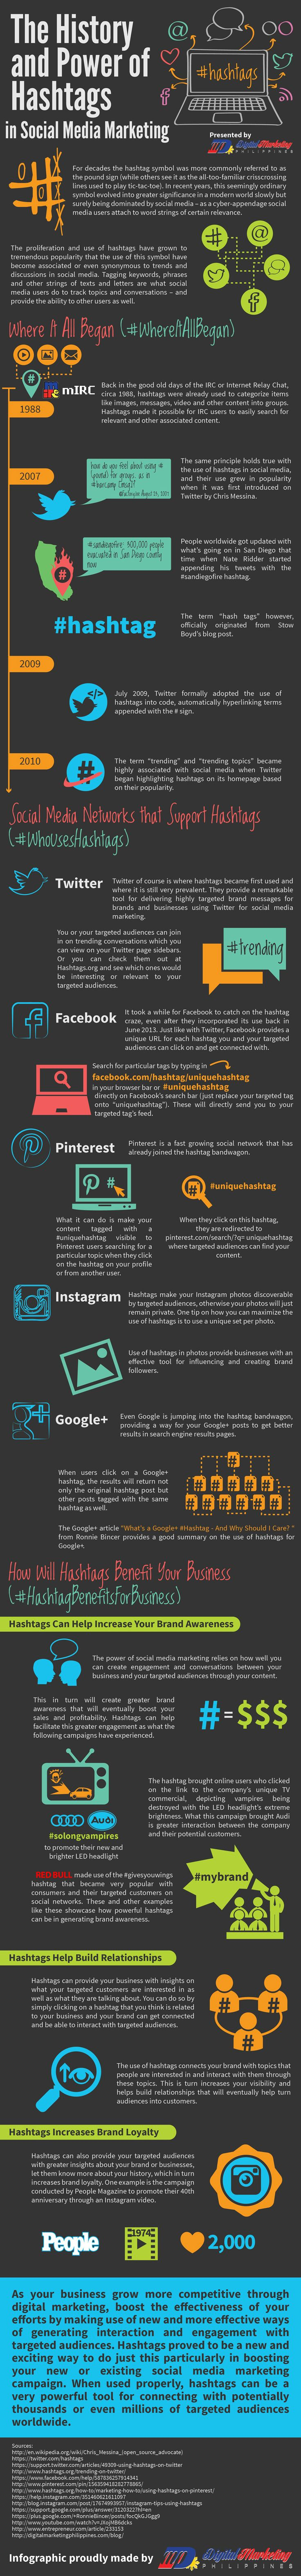 The History of Hashtags in Social Media Marketing [INFOGRAPHIC]